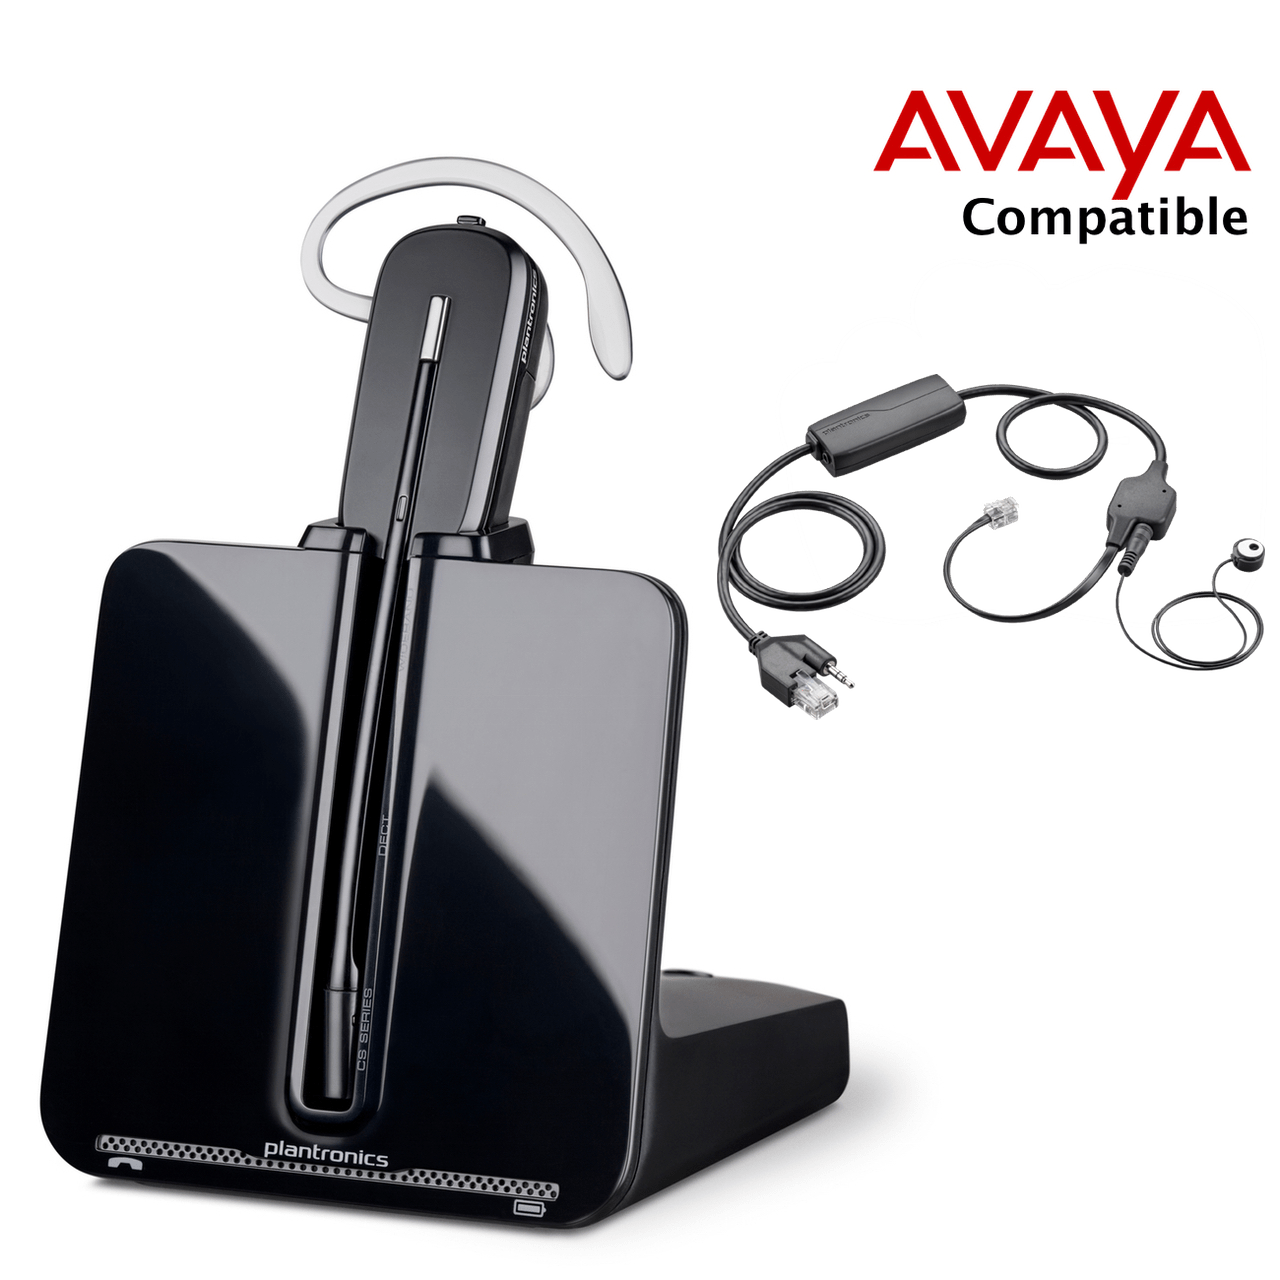 hight resolution of avaya compatible plantronics voip wireless headset bundle loading zoom plantronics headset wiring diagram